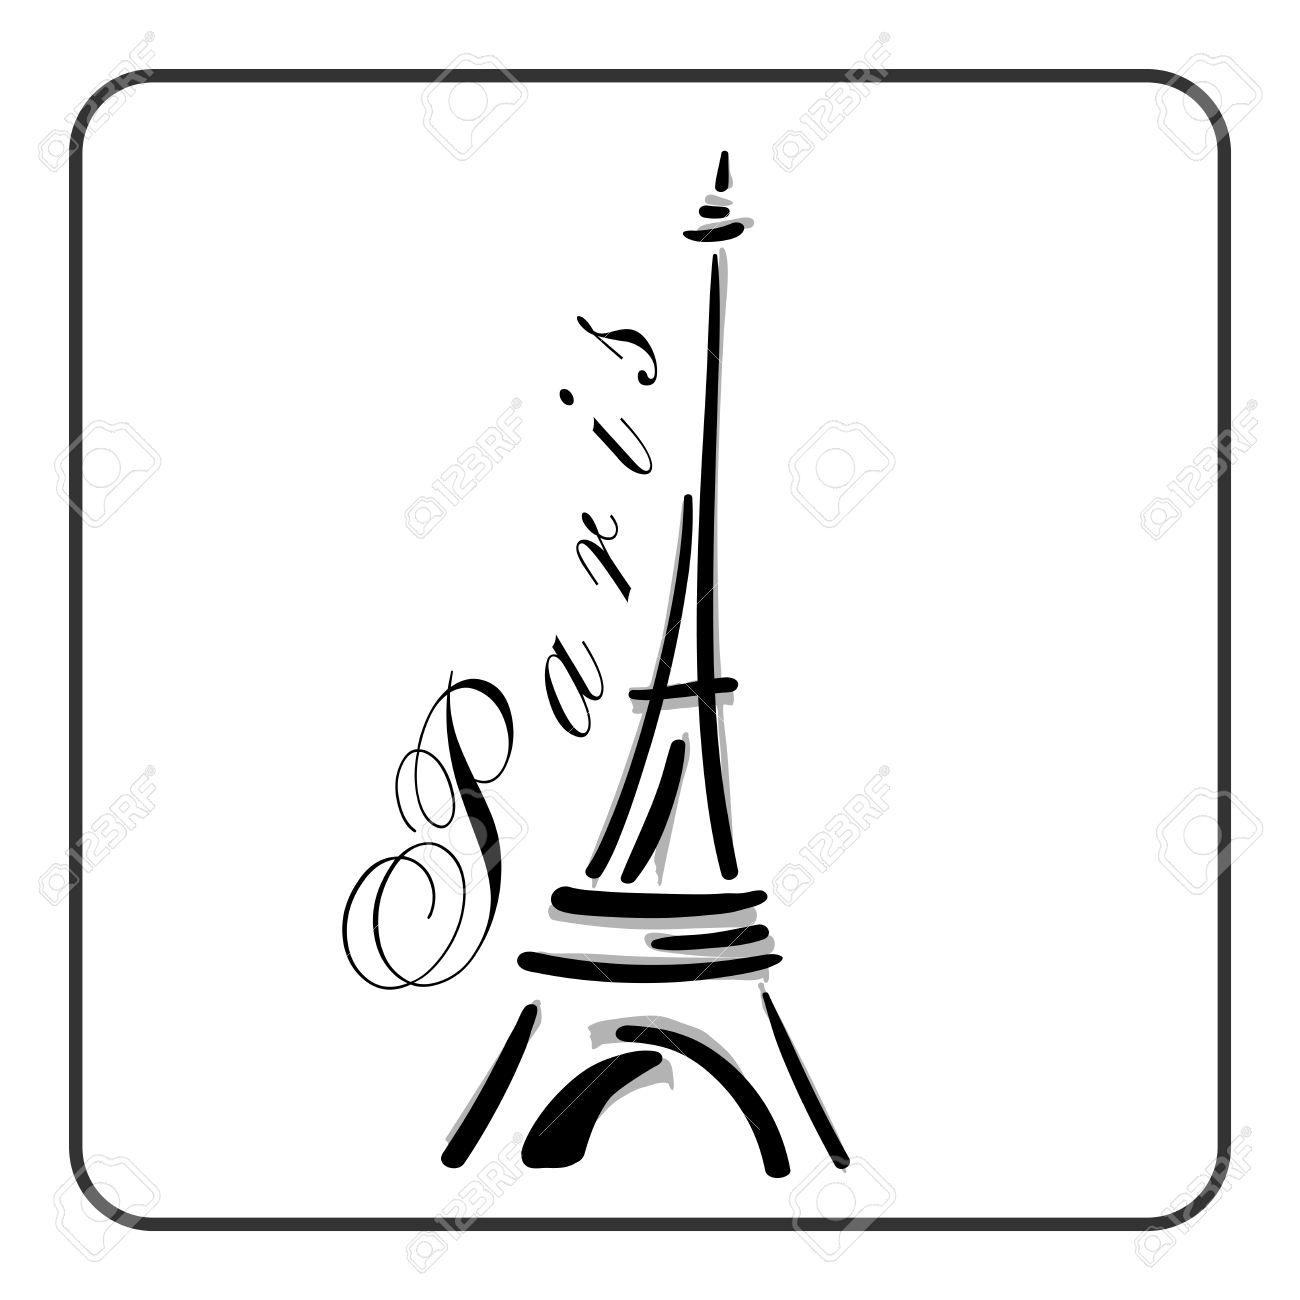 1300x1300 Illustration Eiffel Tower Two Styles Hand Stock Vector 753866140